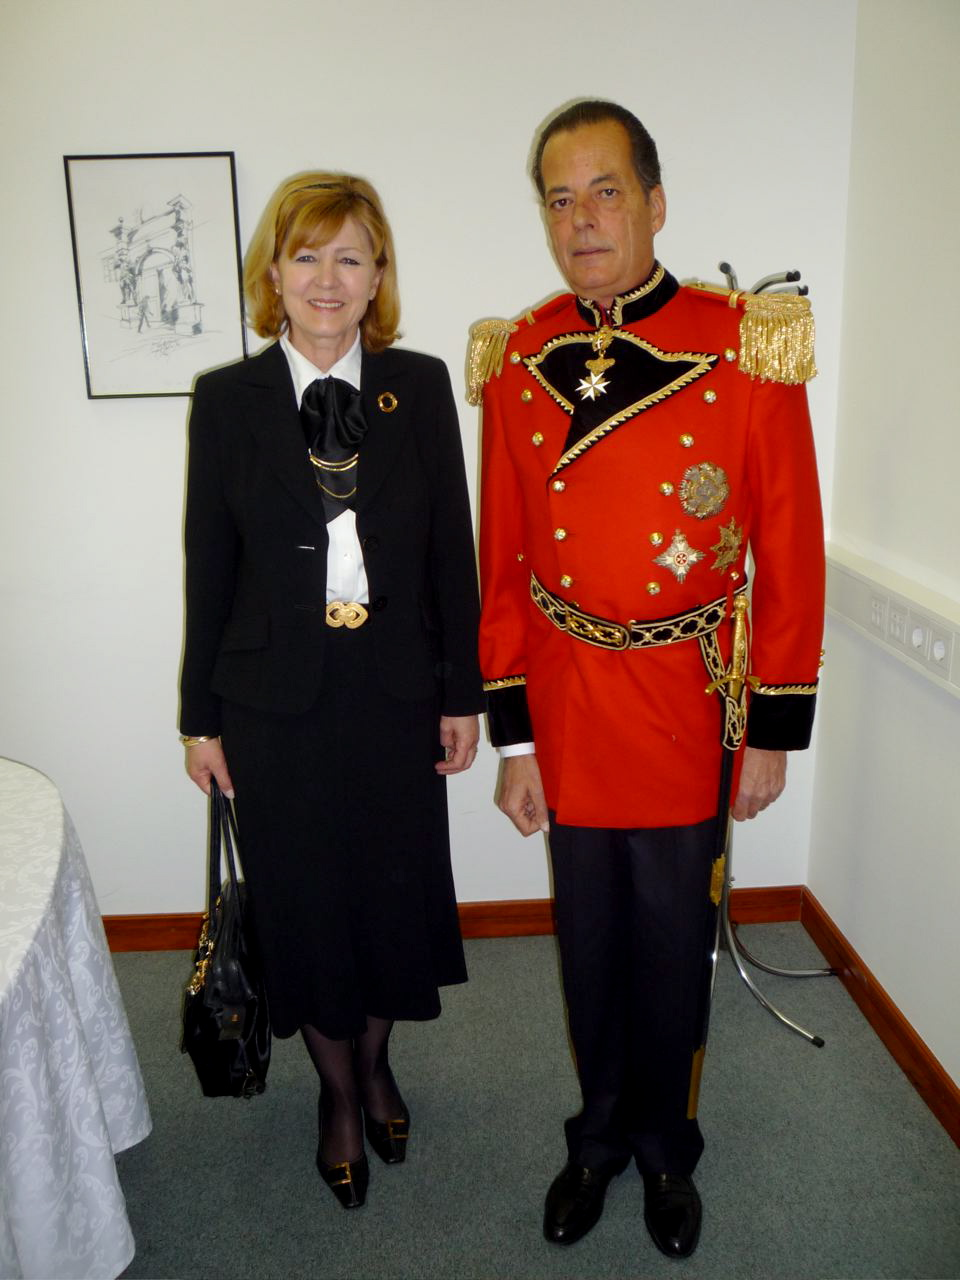 THE CHIEF OF PROTOCOL Mrs. MAJA LOVRENCIC SVETEK